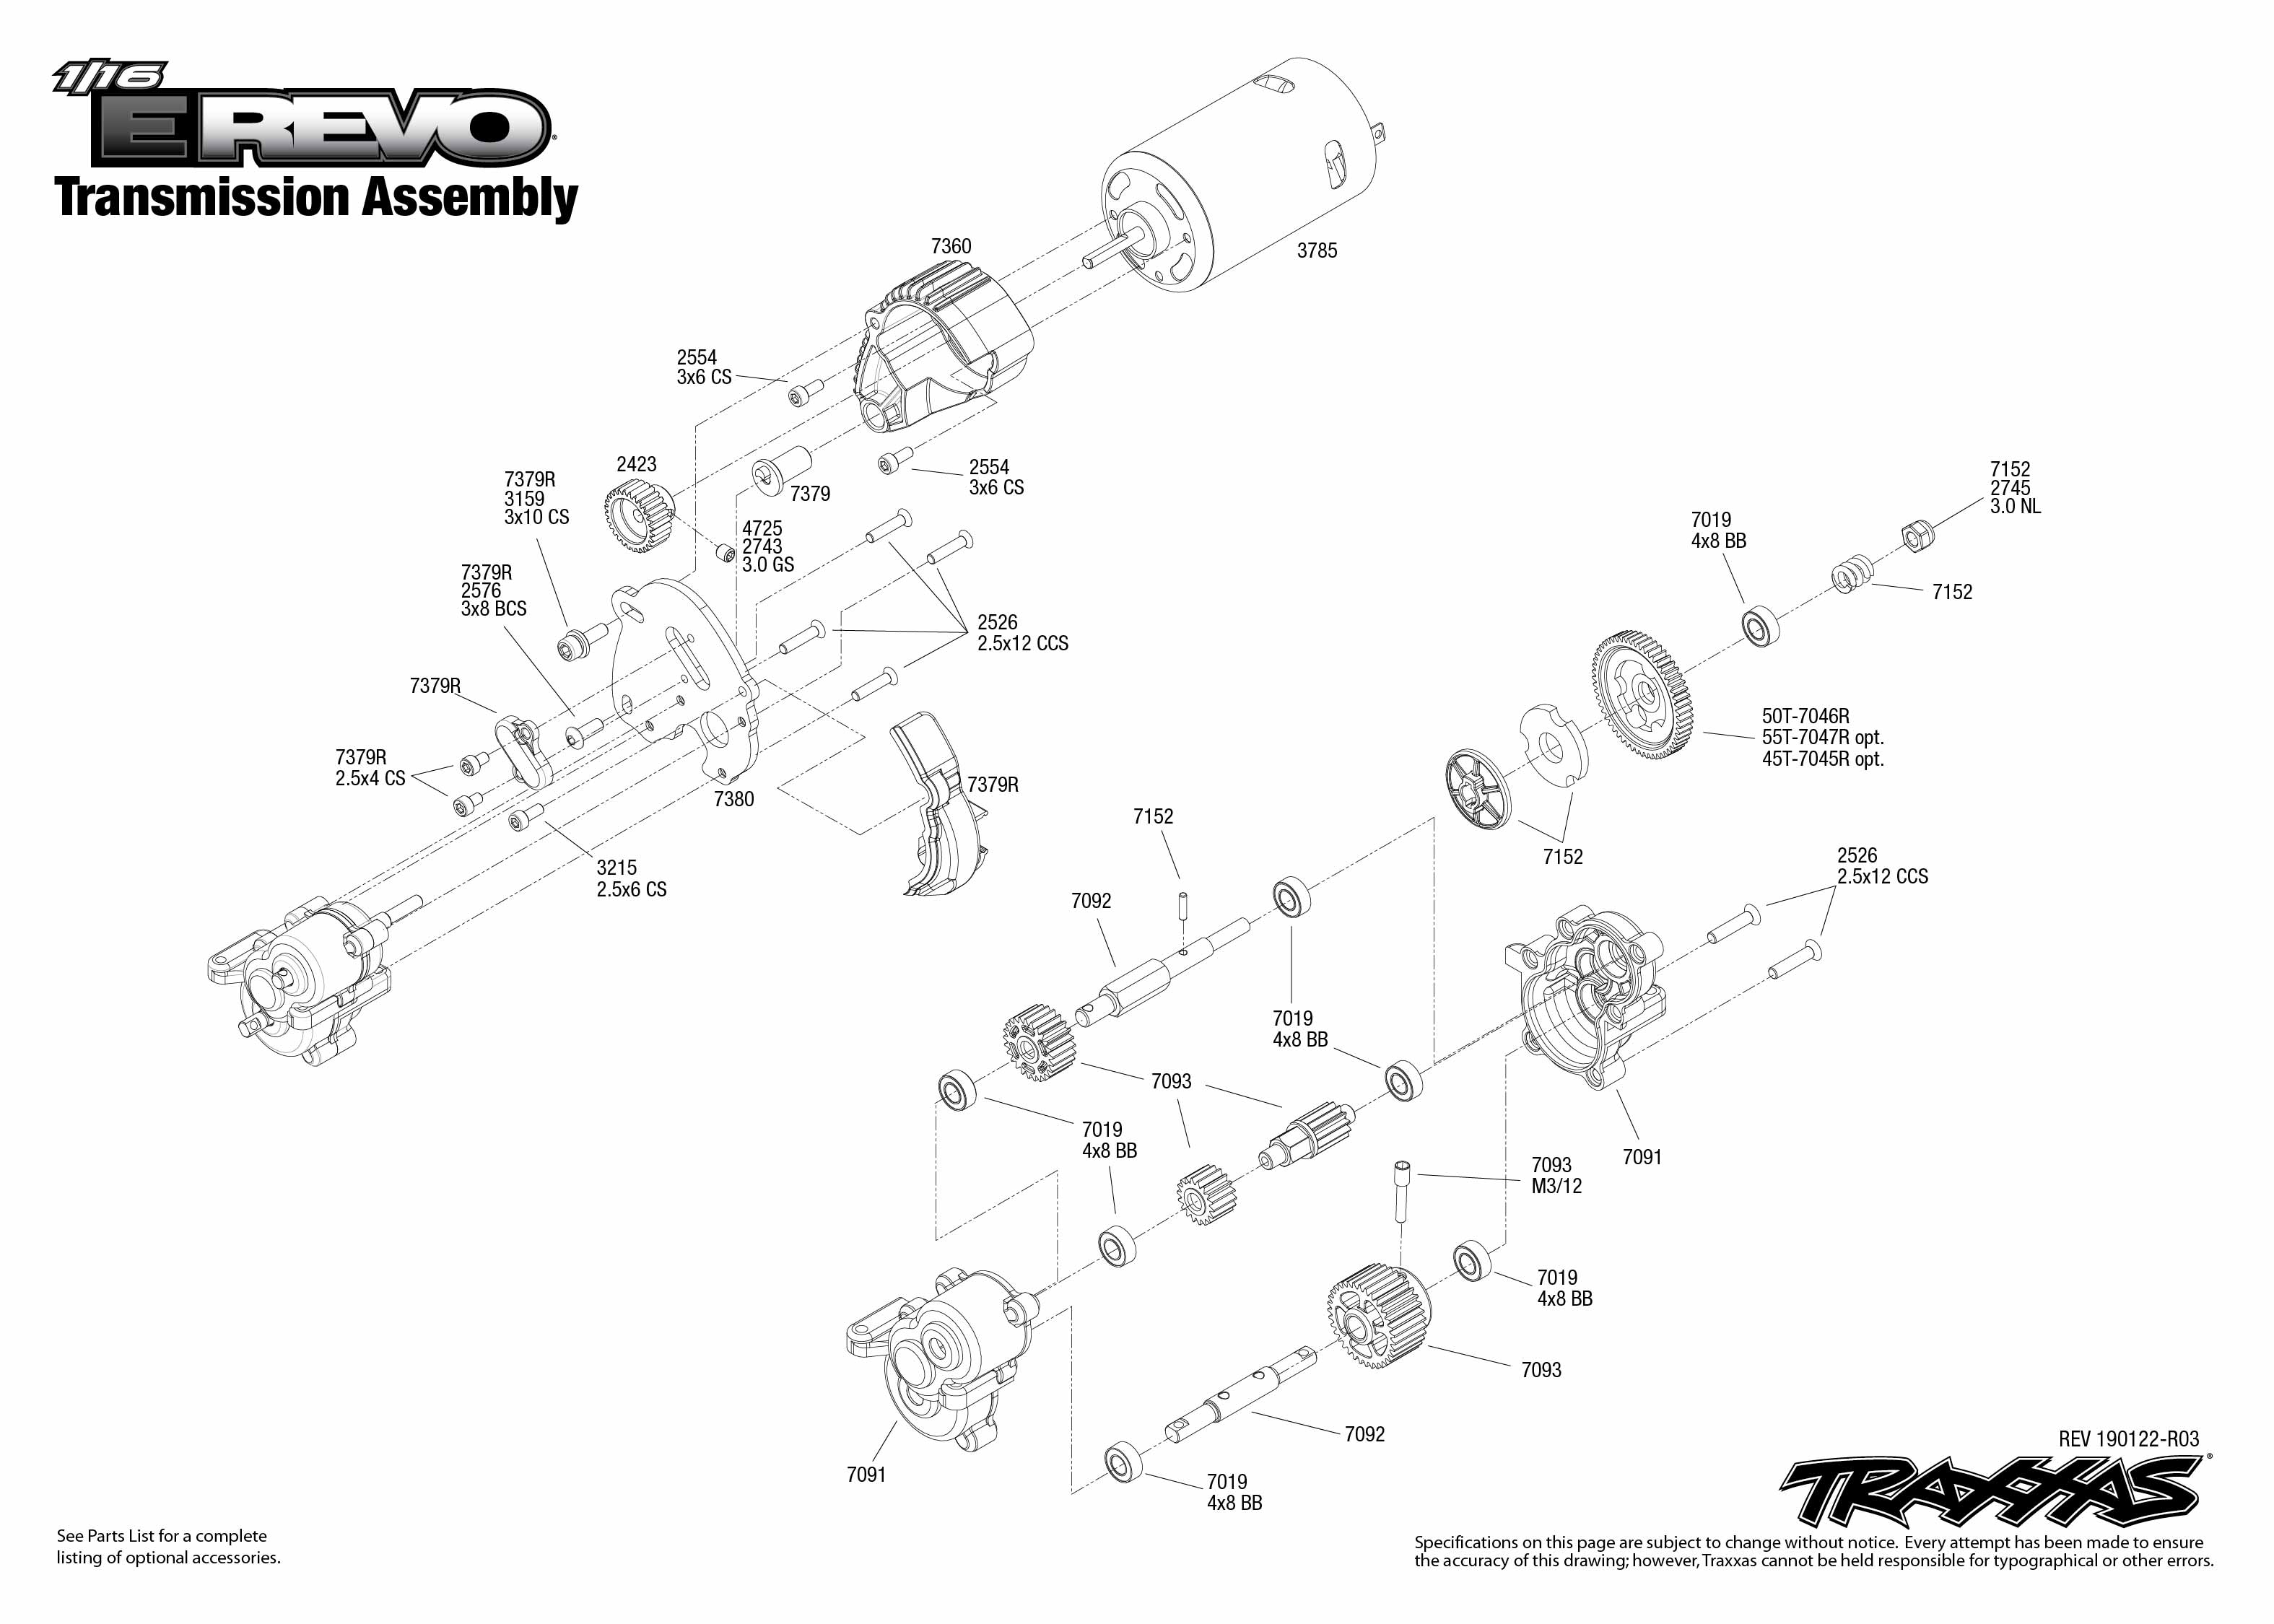 1 16 e revo (71054 1) transmission assembly exploded view traxxas Mamba Powered Traxxas Revo Parts Diagram enter your email address to subscribe